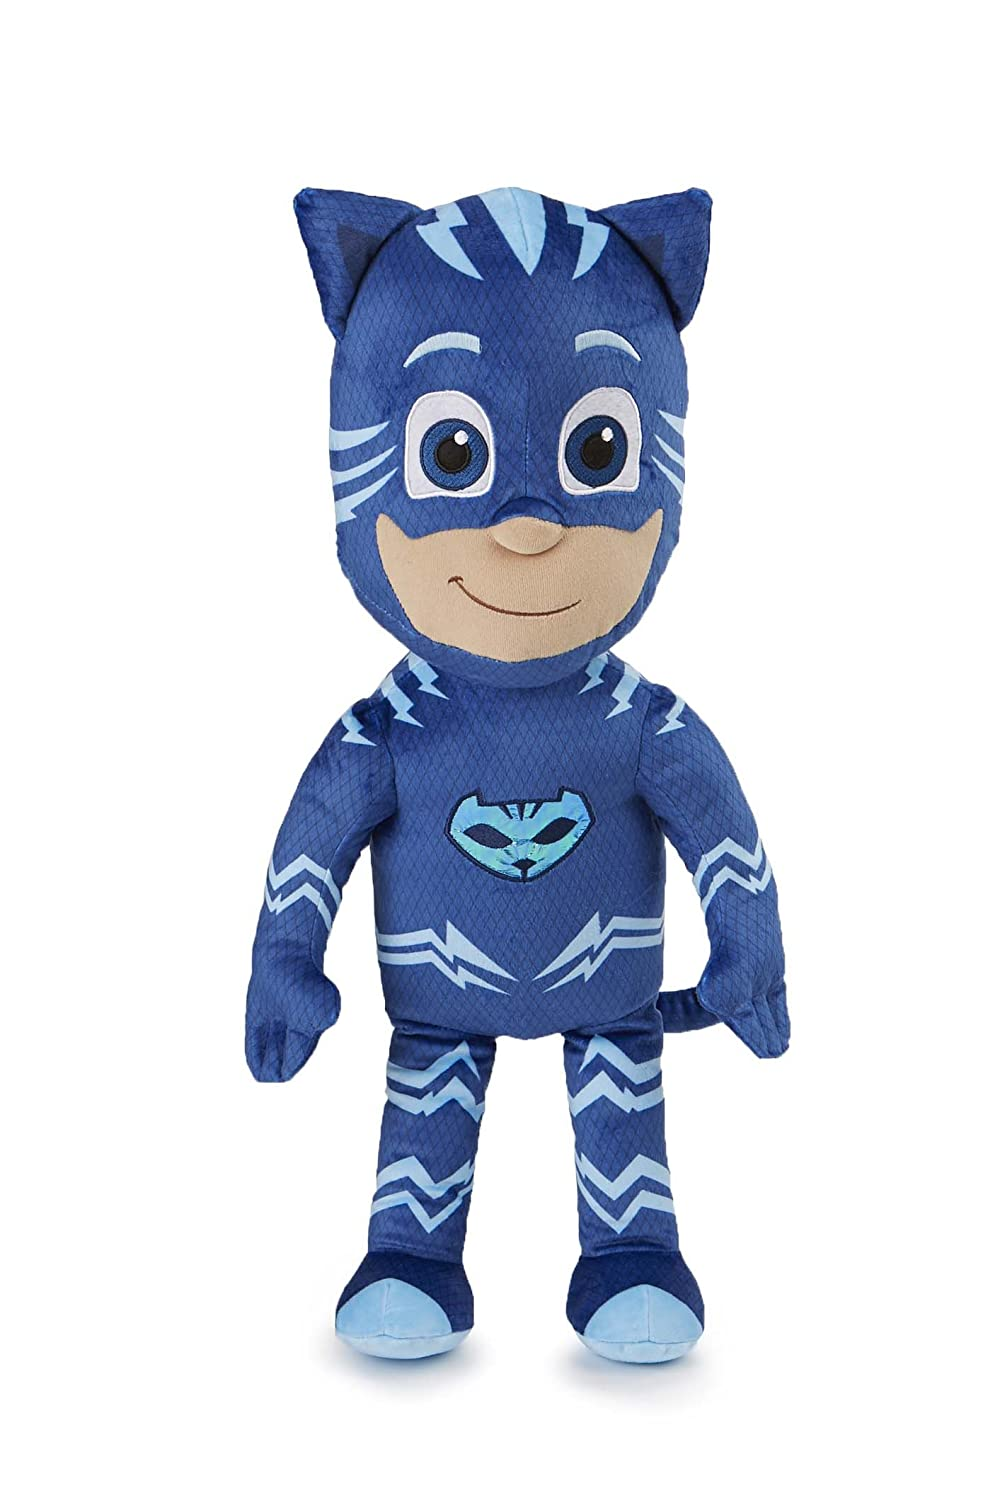 Blue Pj Masks Catboy Cuddle Pillow 22